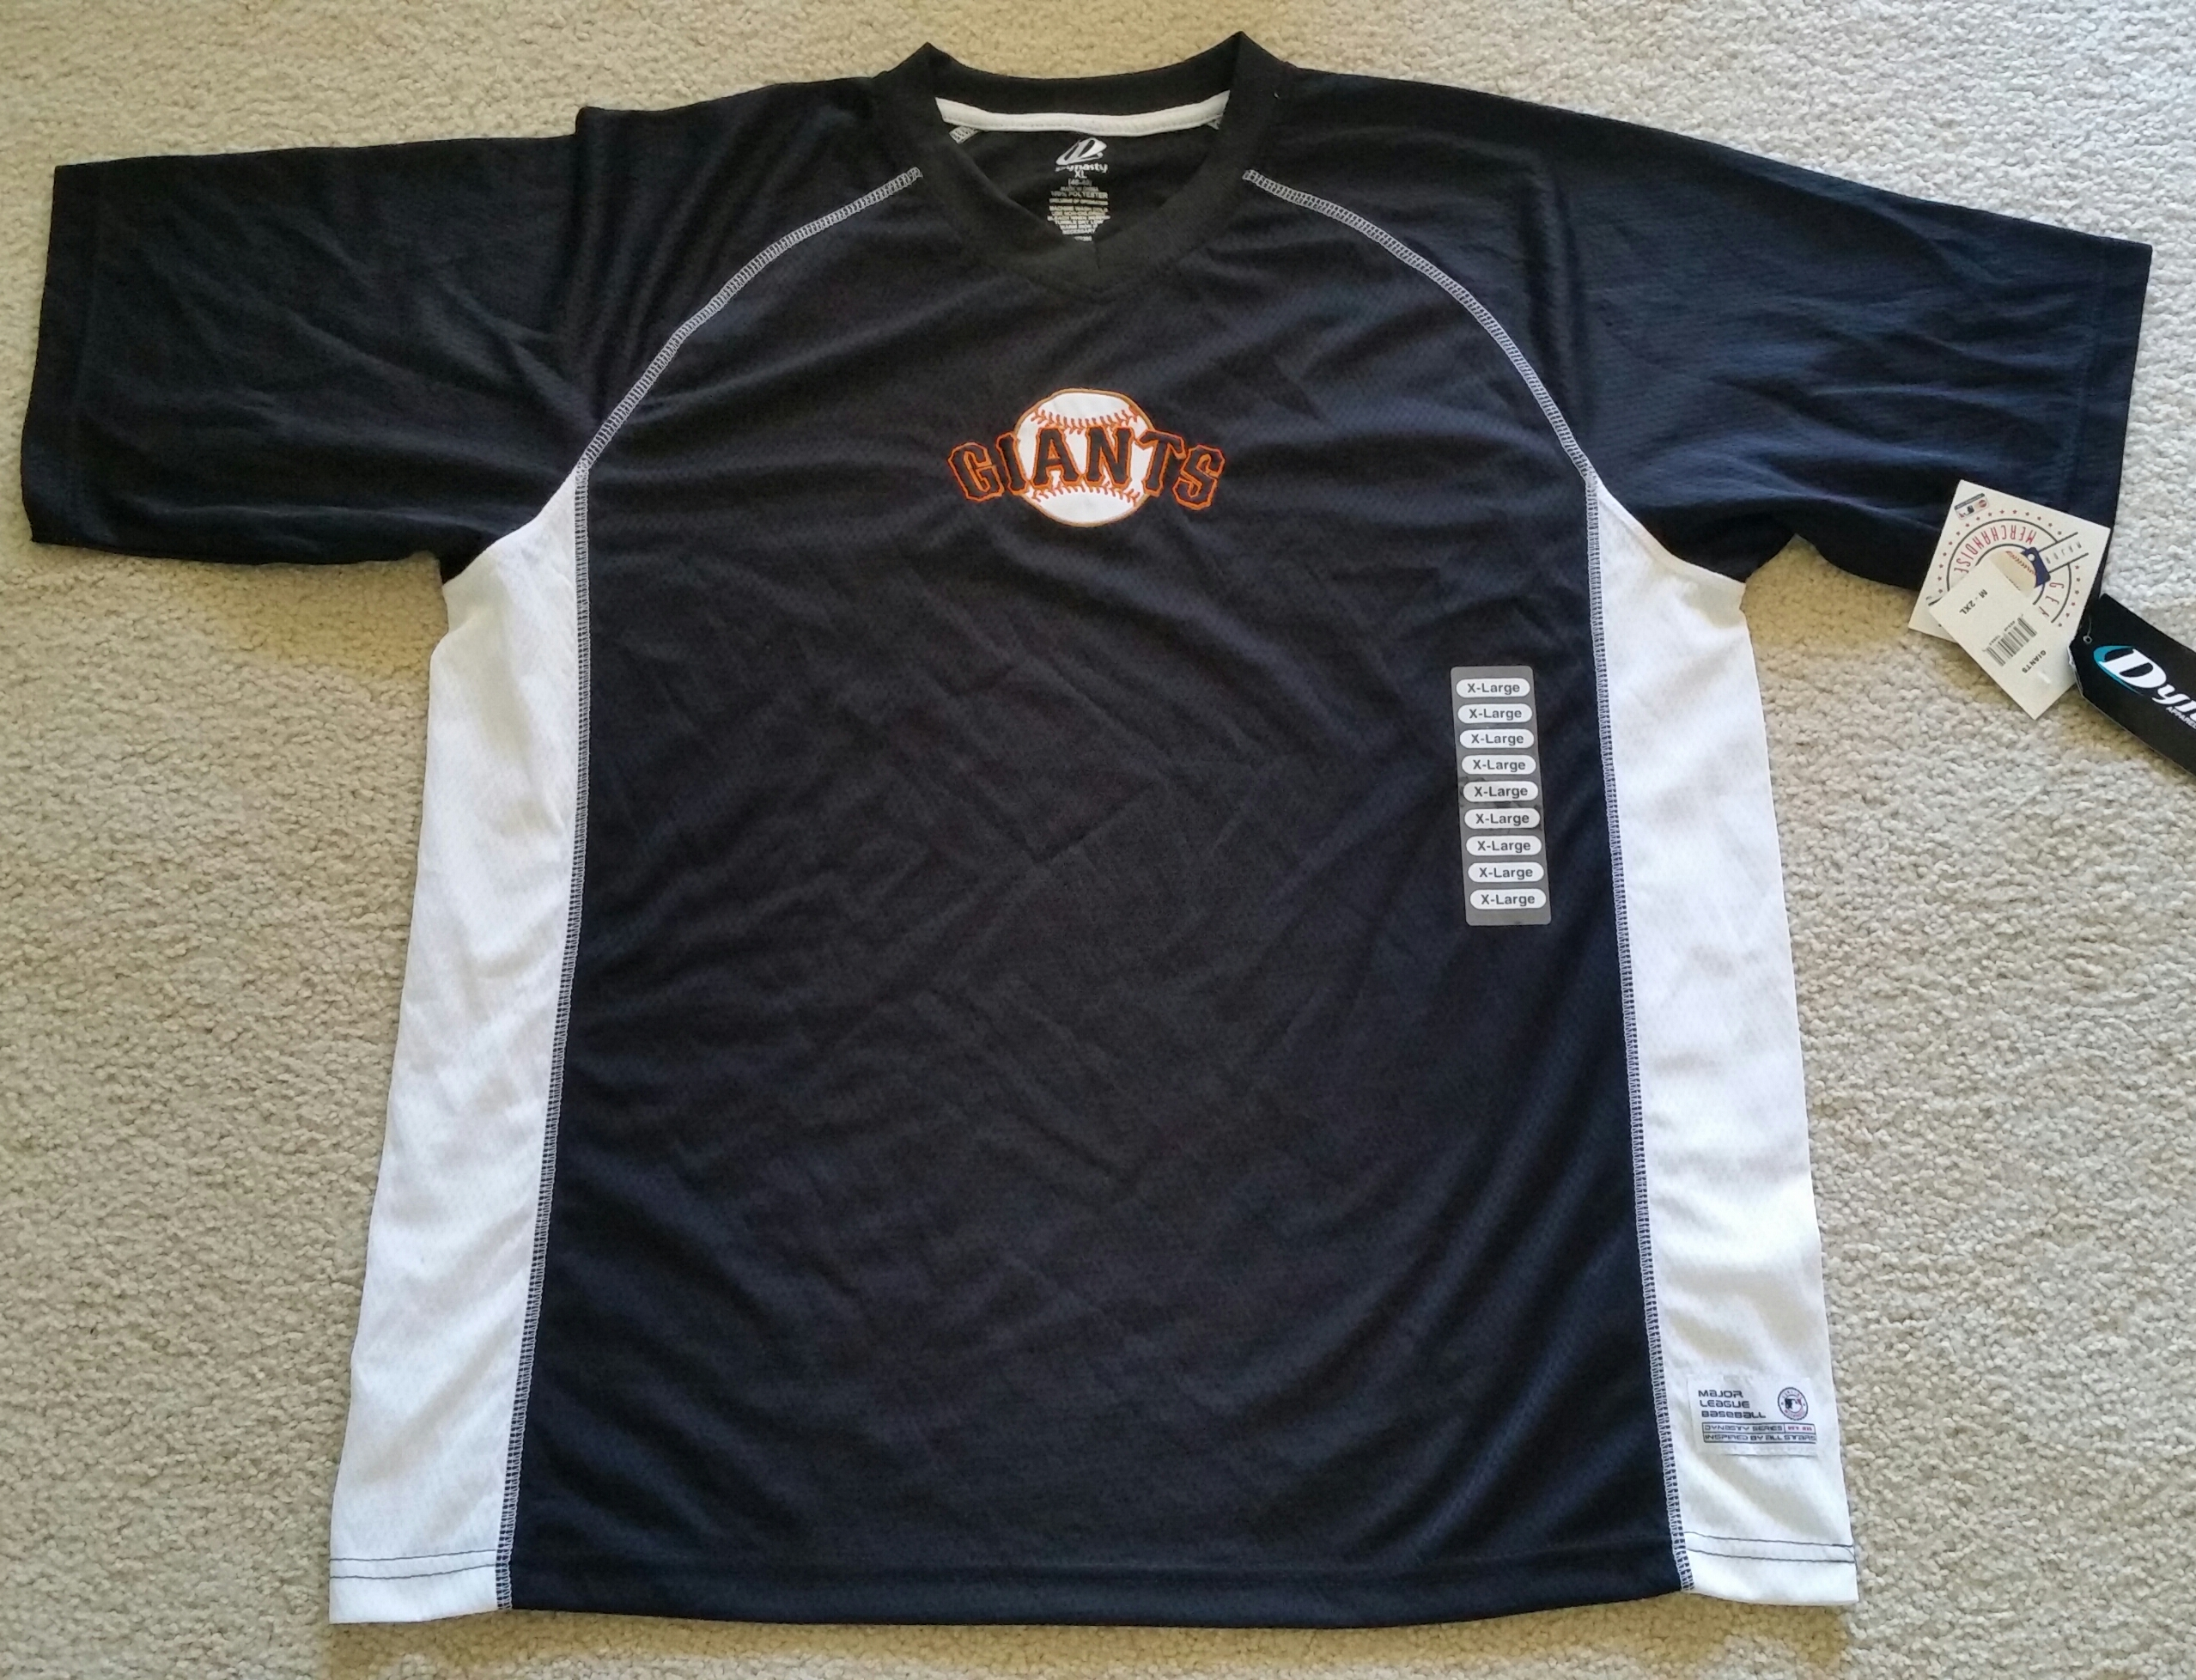 081601102 New with Tags SF Giants Size XL - $30